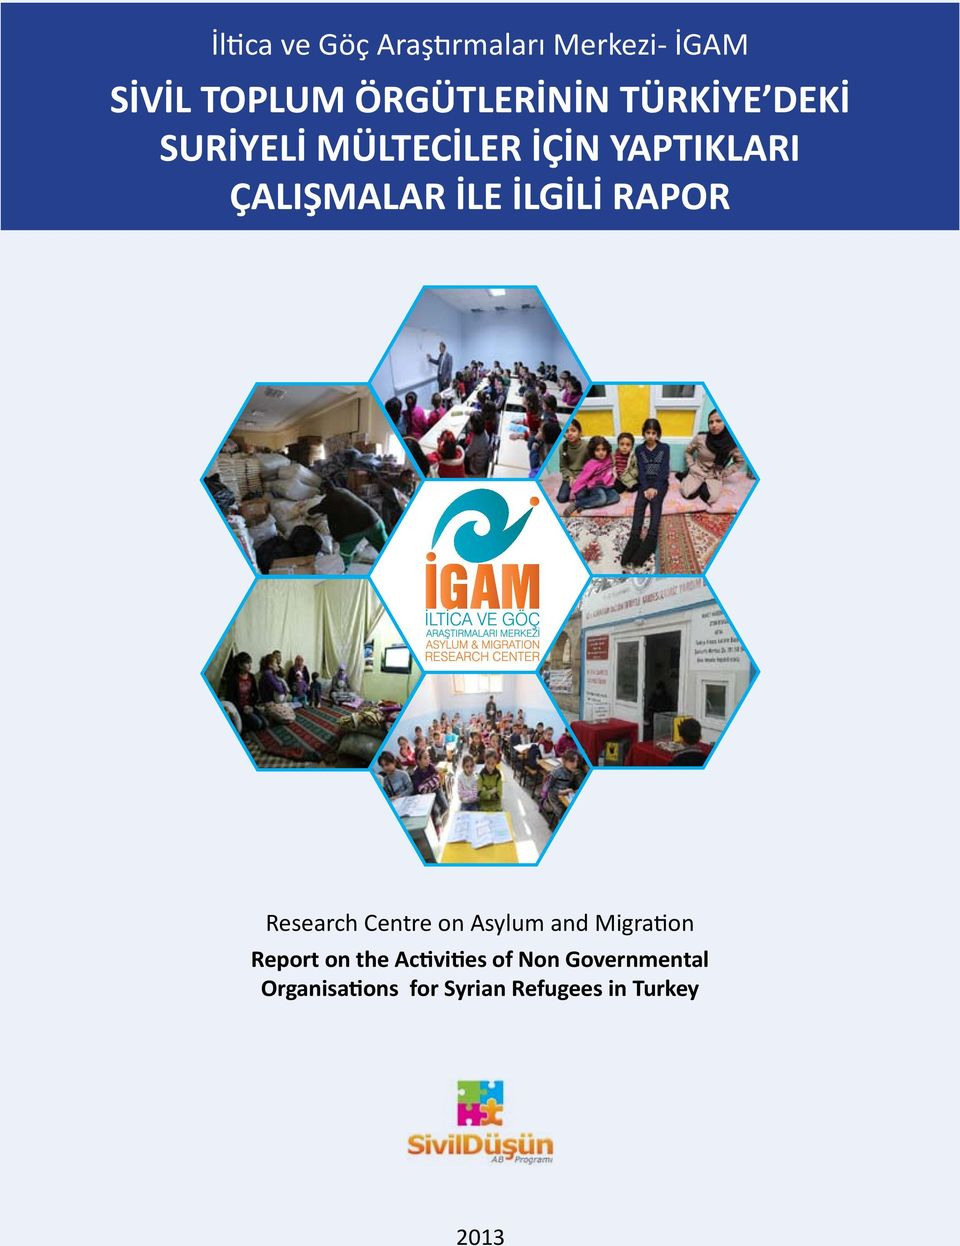 MIGRATION RESEARCH CENTER Research Centre on Asylum and Migration Report on